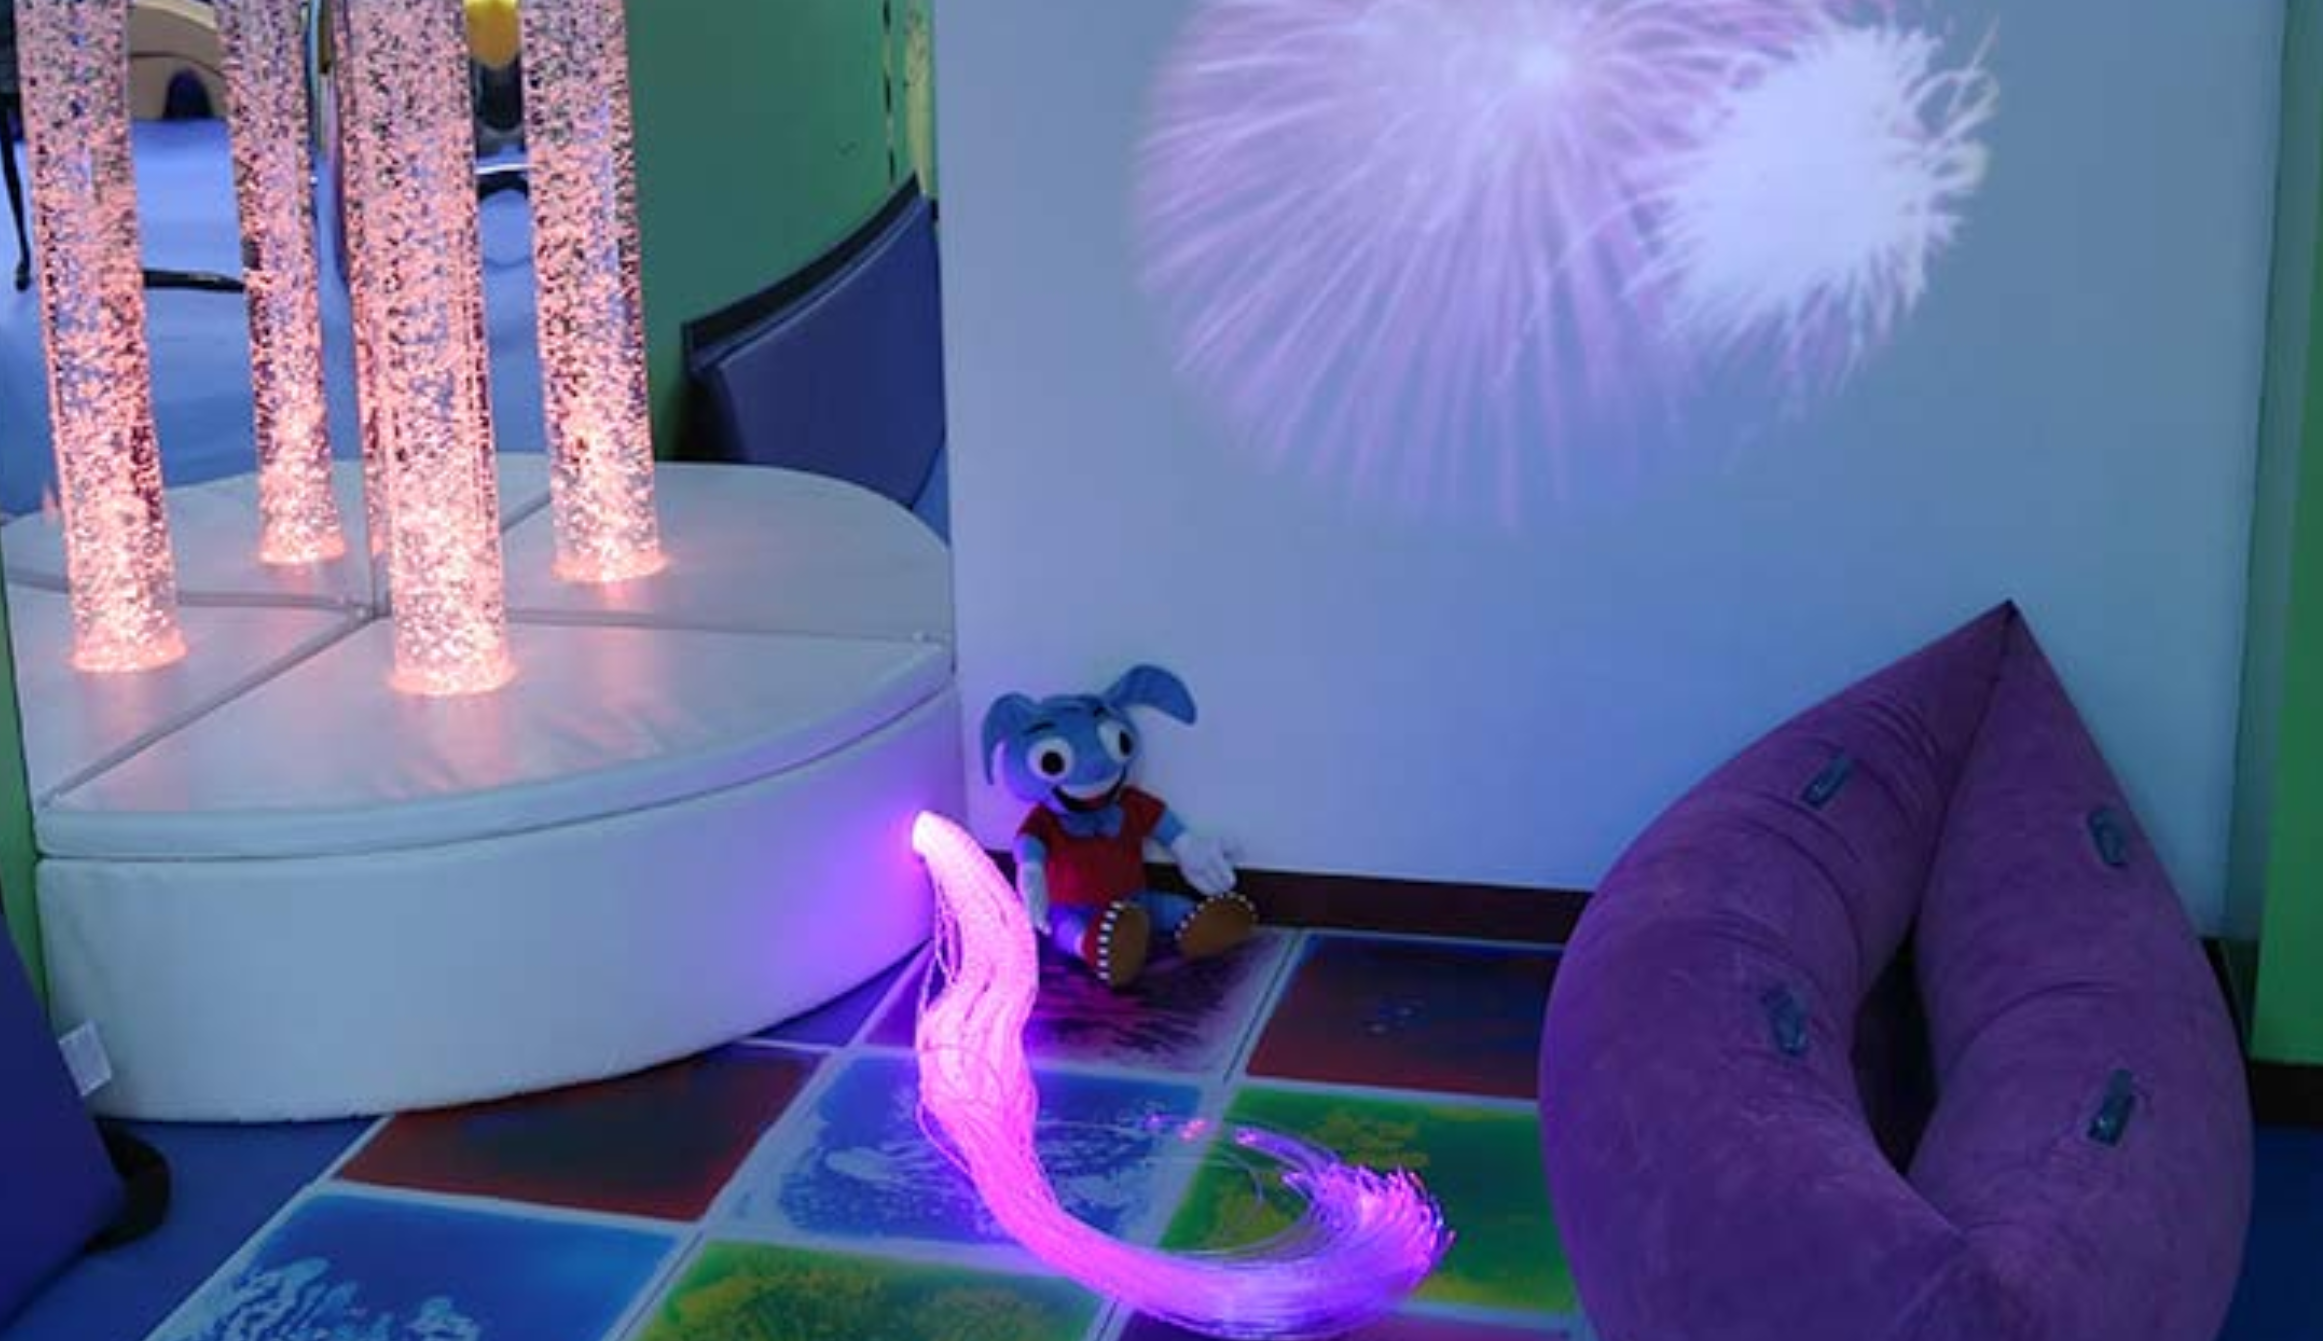 Photo rendering of the sensory room